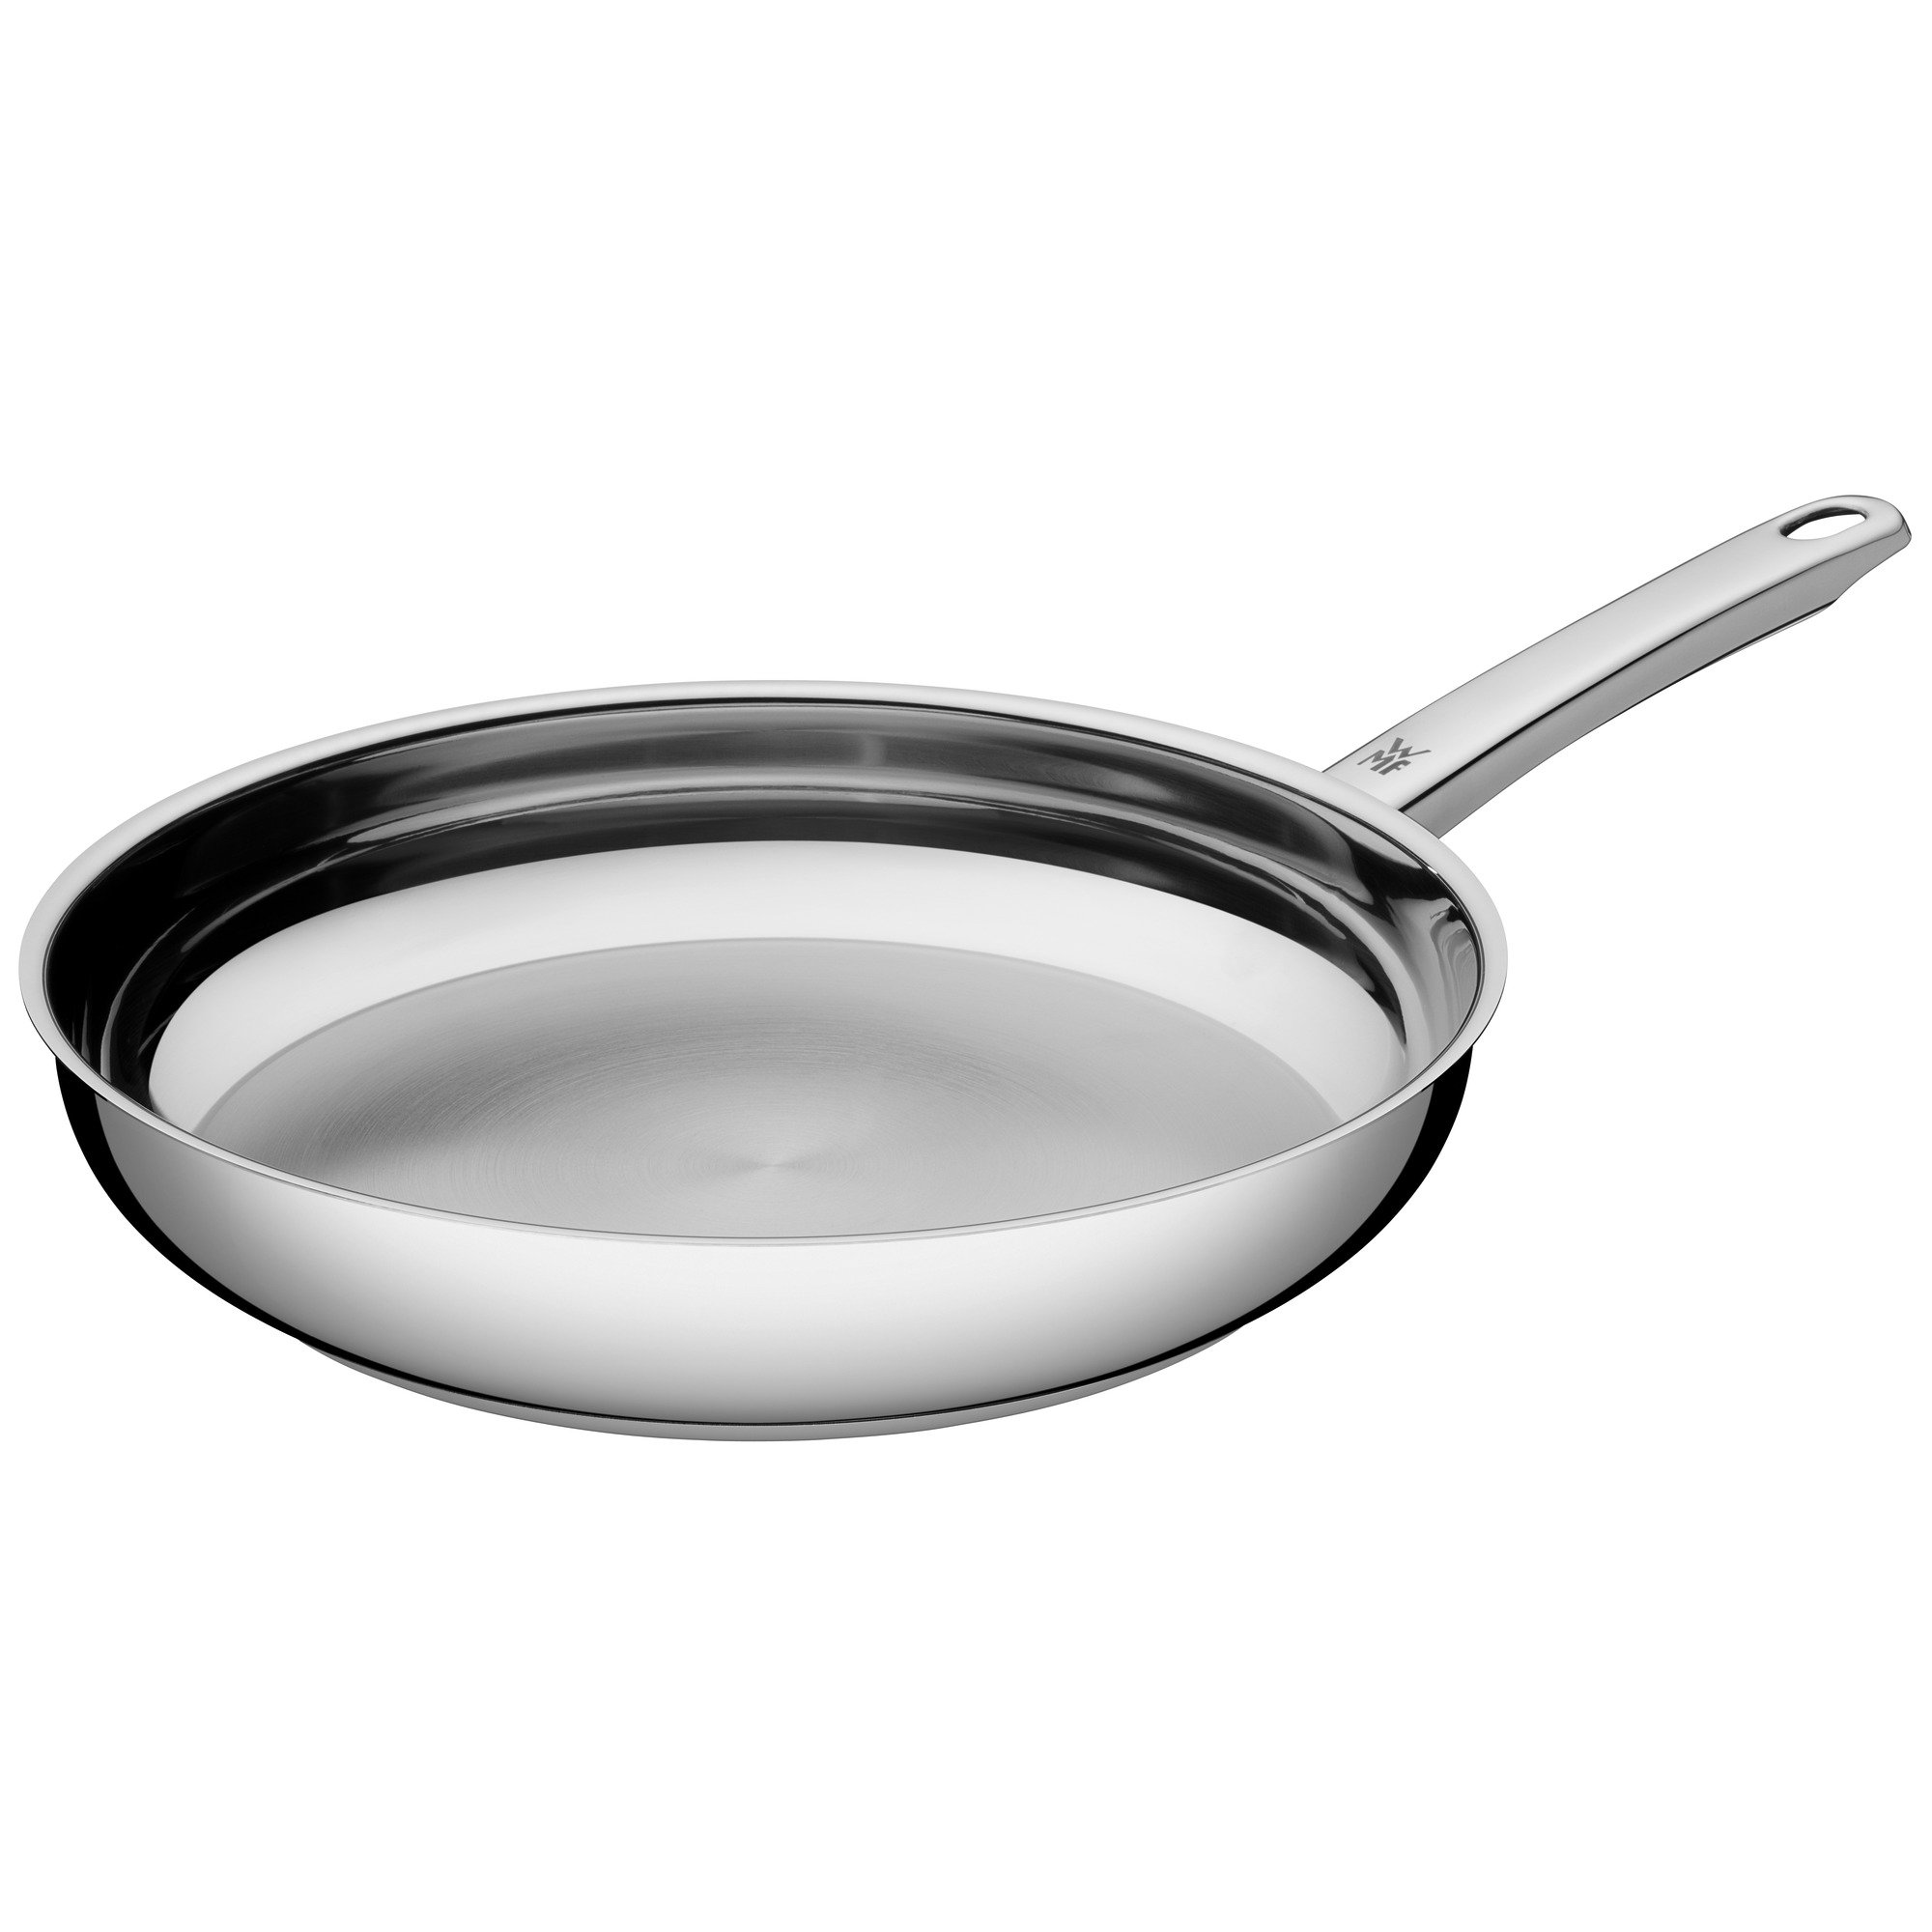 WMF Favorit Profi Frying Pan Uncoated (Ø 11-Inch / 28cm)